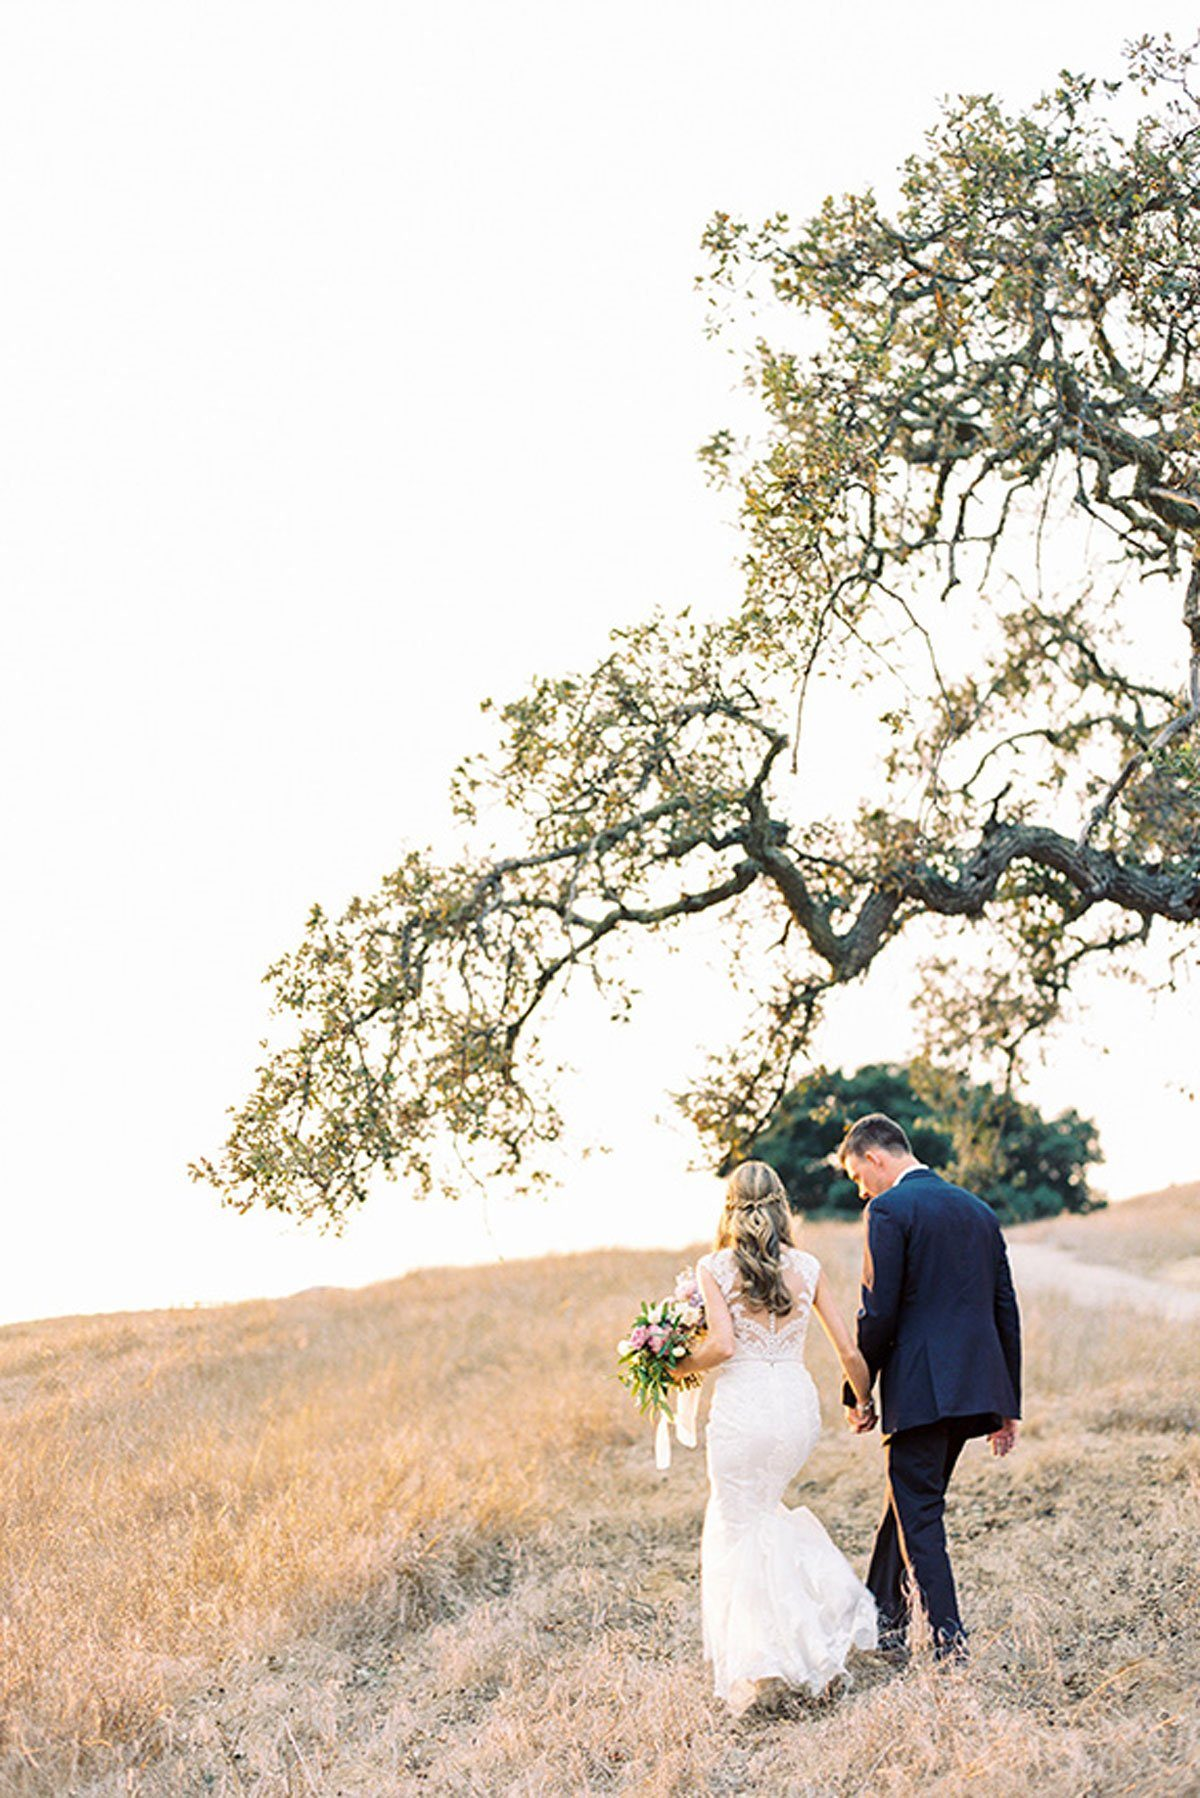 Danielle Poff Photography at the Holman Ranch